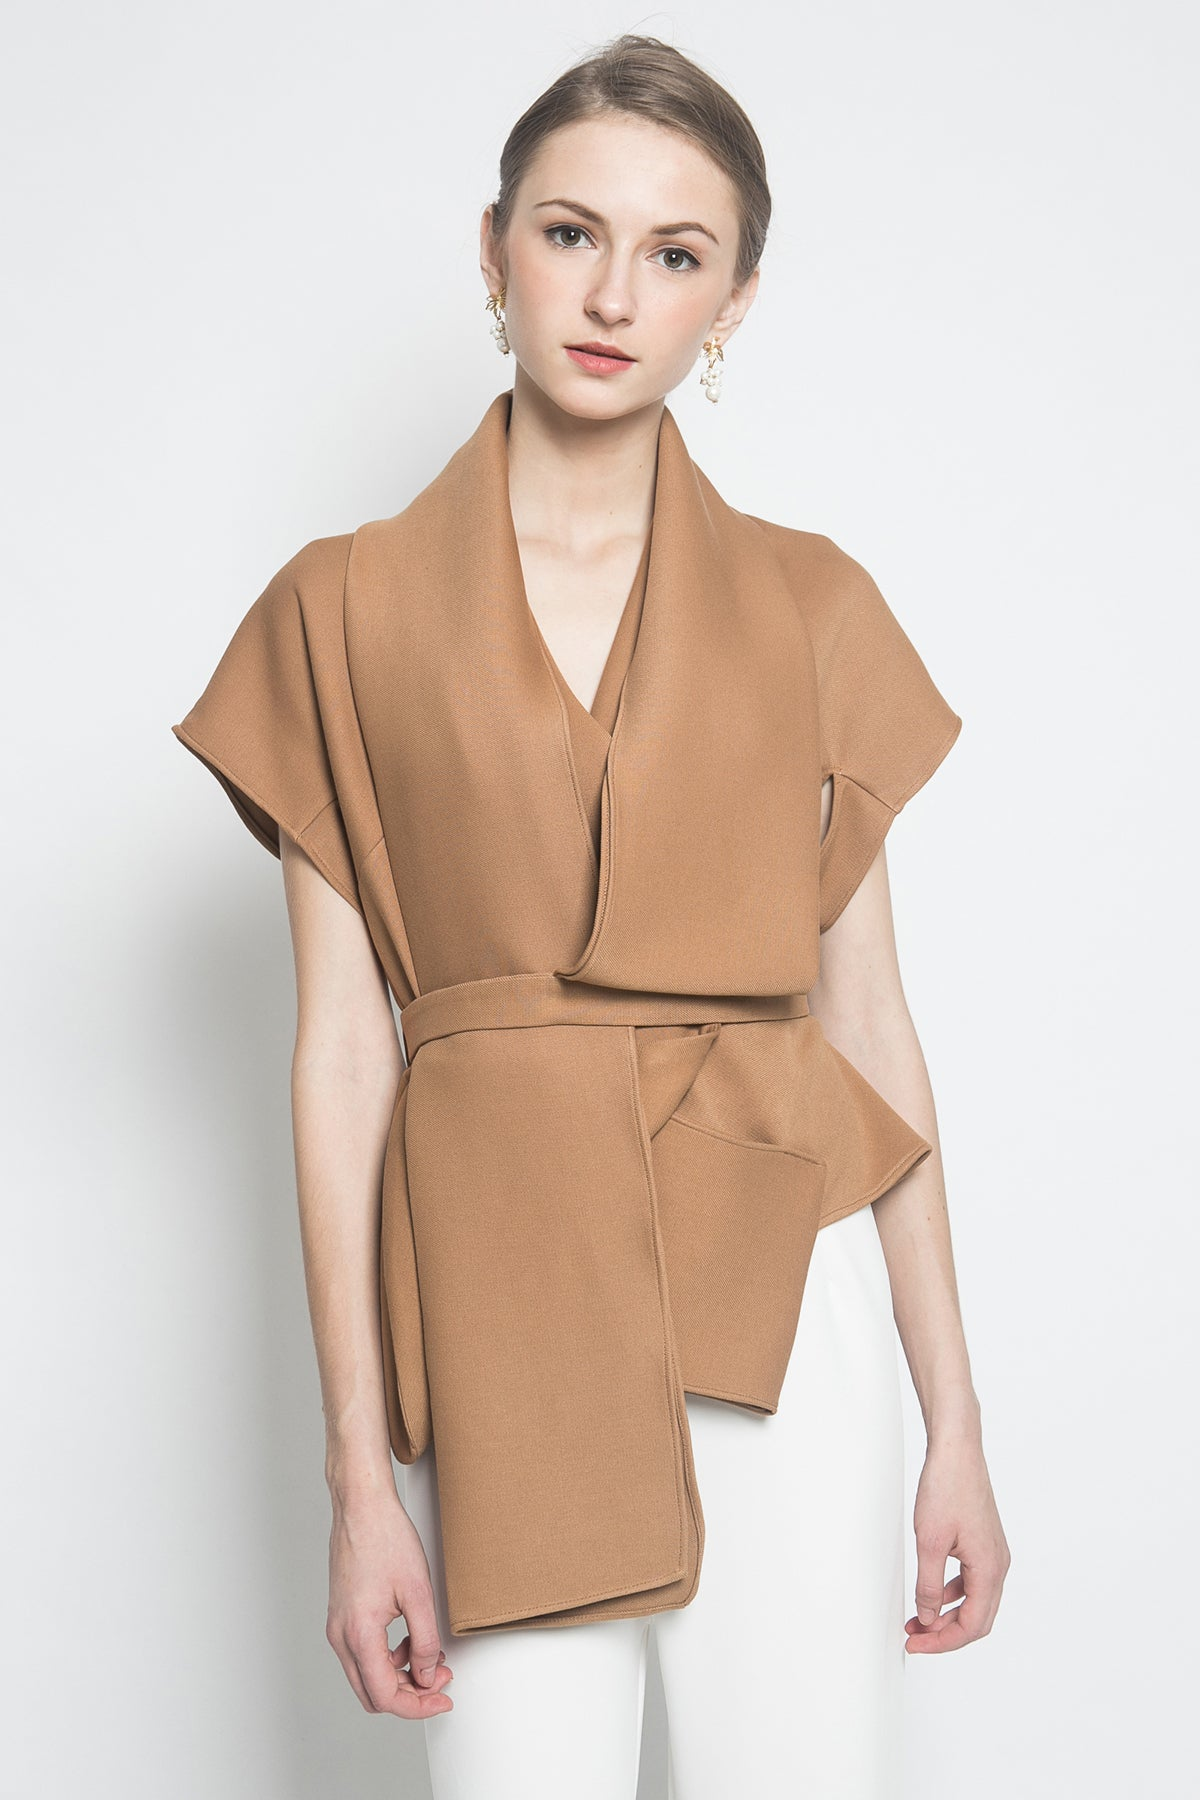 Bloom et Champs Scarf Top in Brown